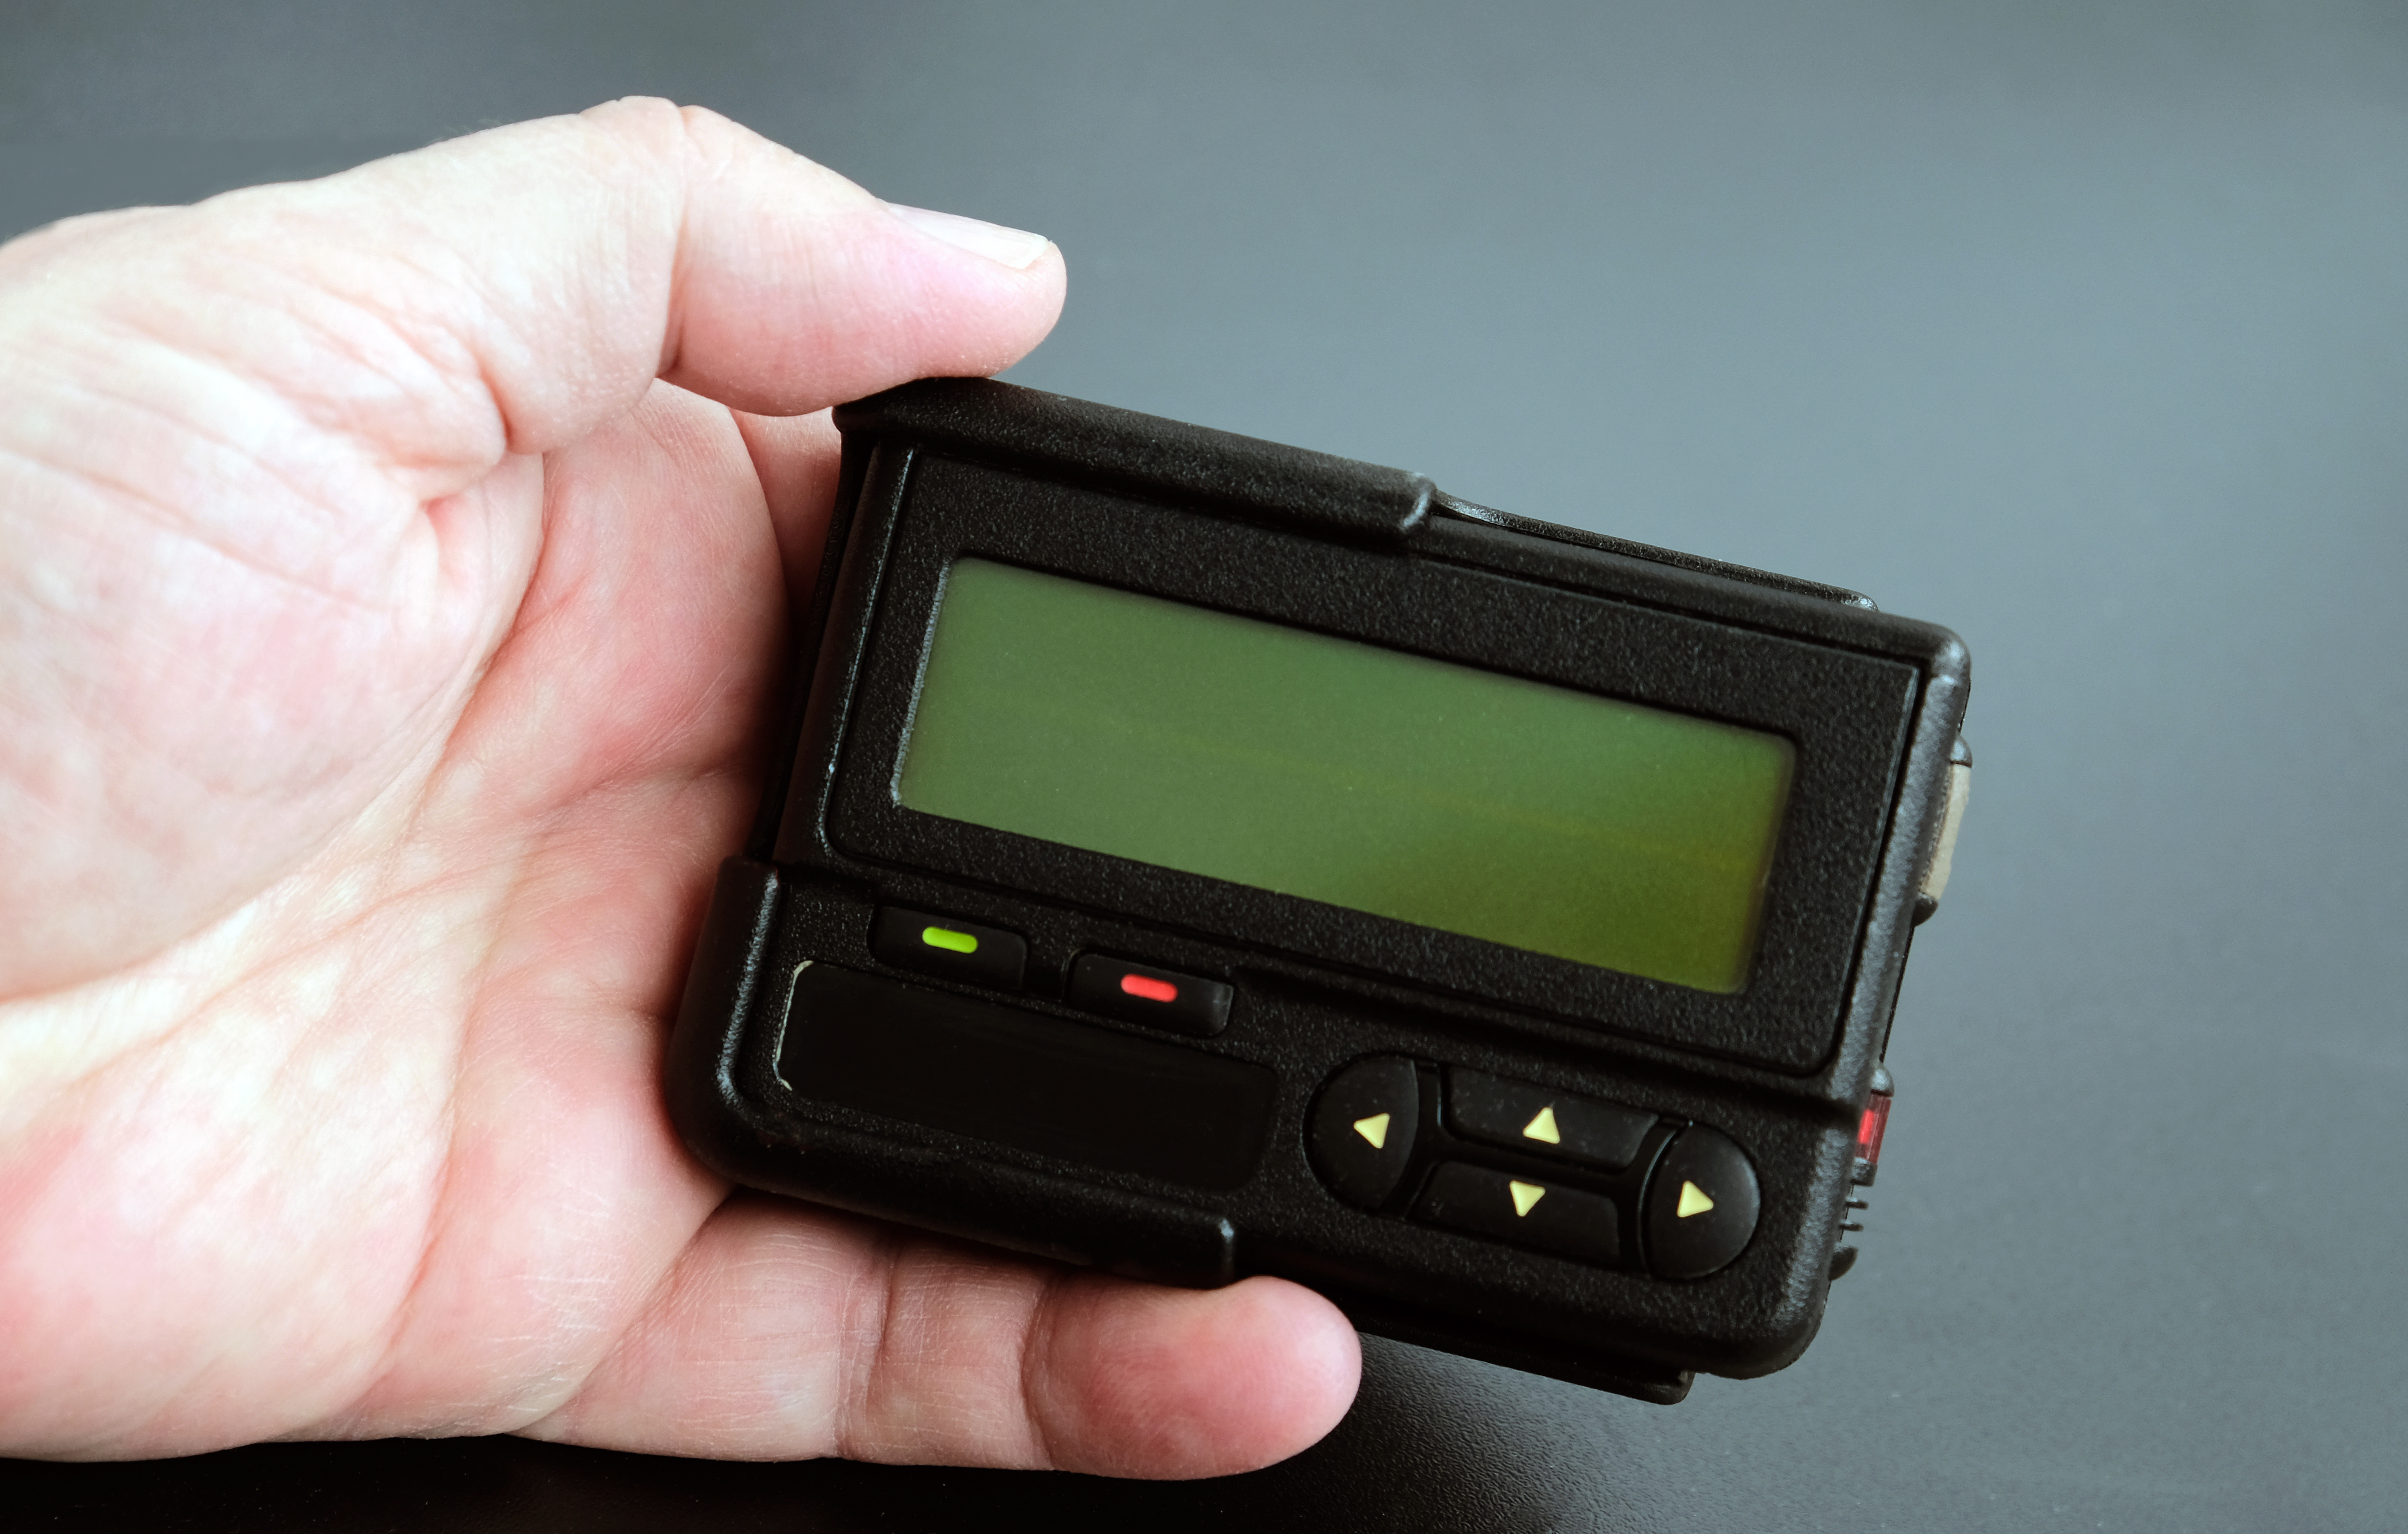 Old black pager in hand